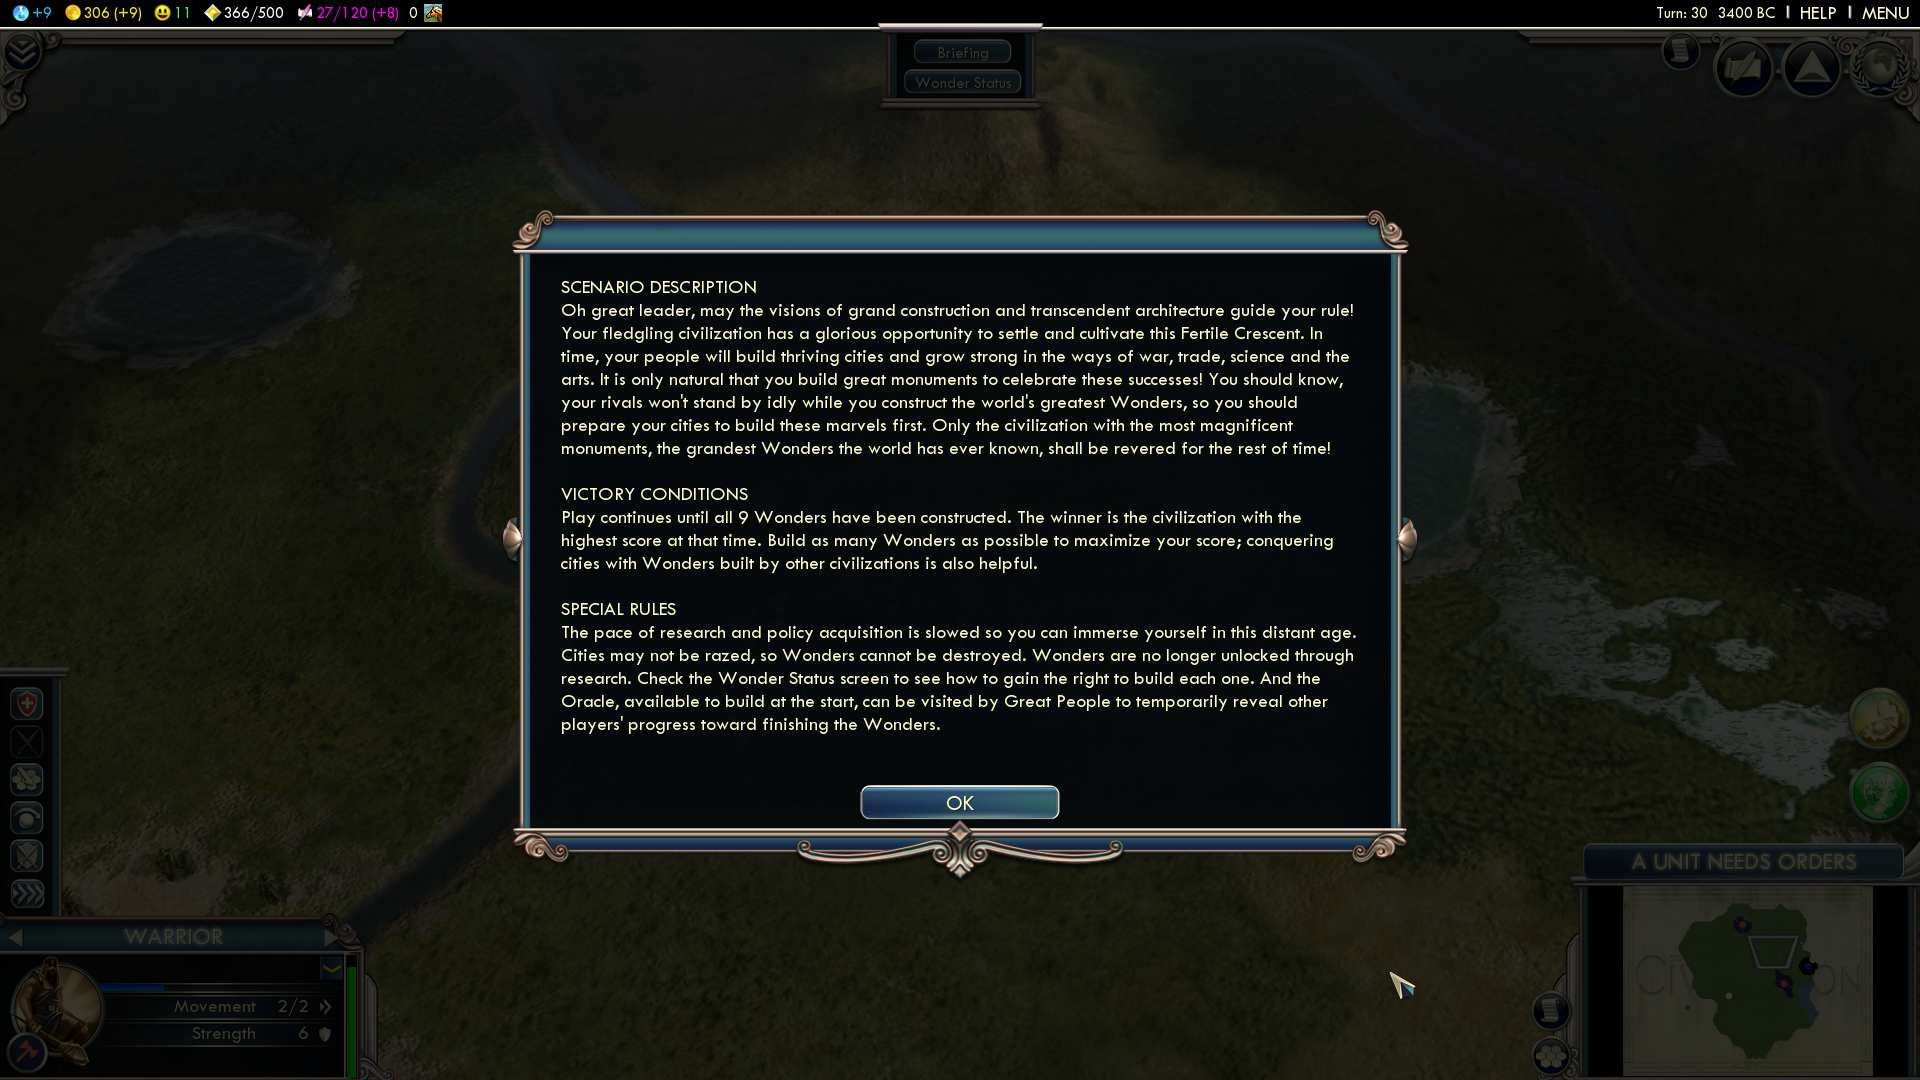 Sid Meier's Civilization V: Wonders of the Ancient World Scenario Pack Windows The victory conditions and special rules for this scenario.